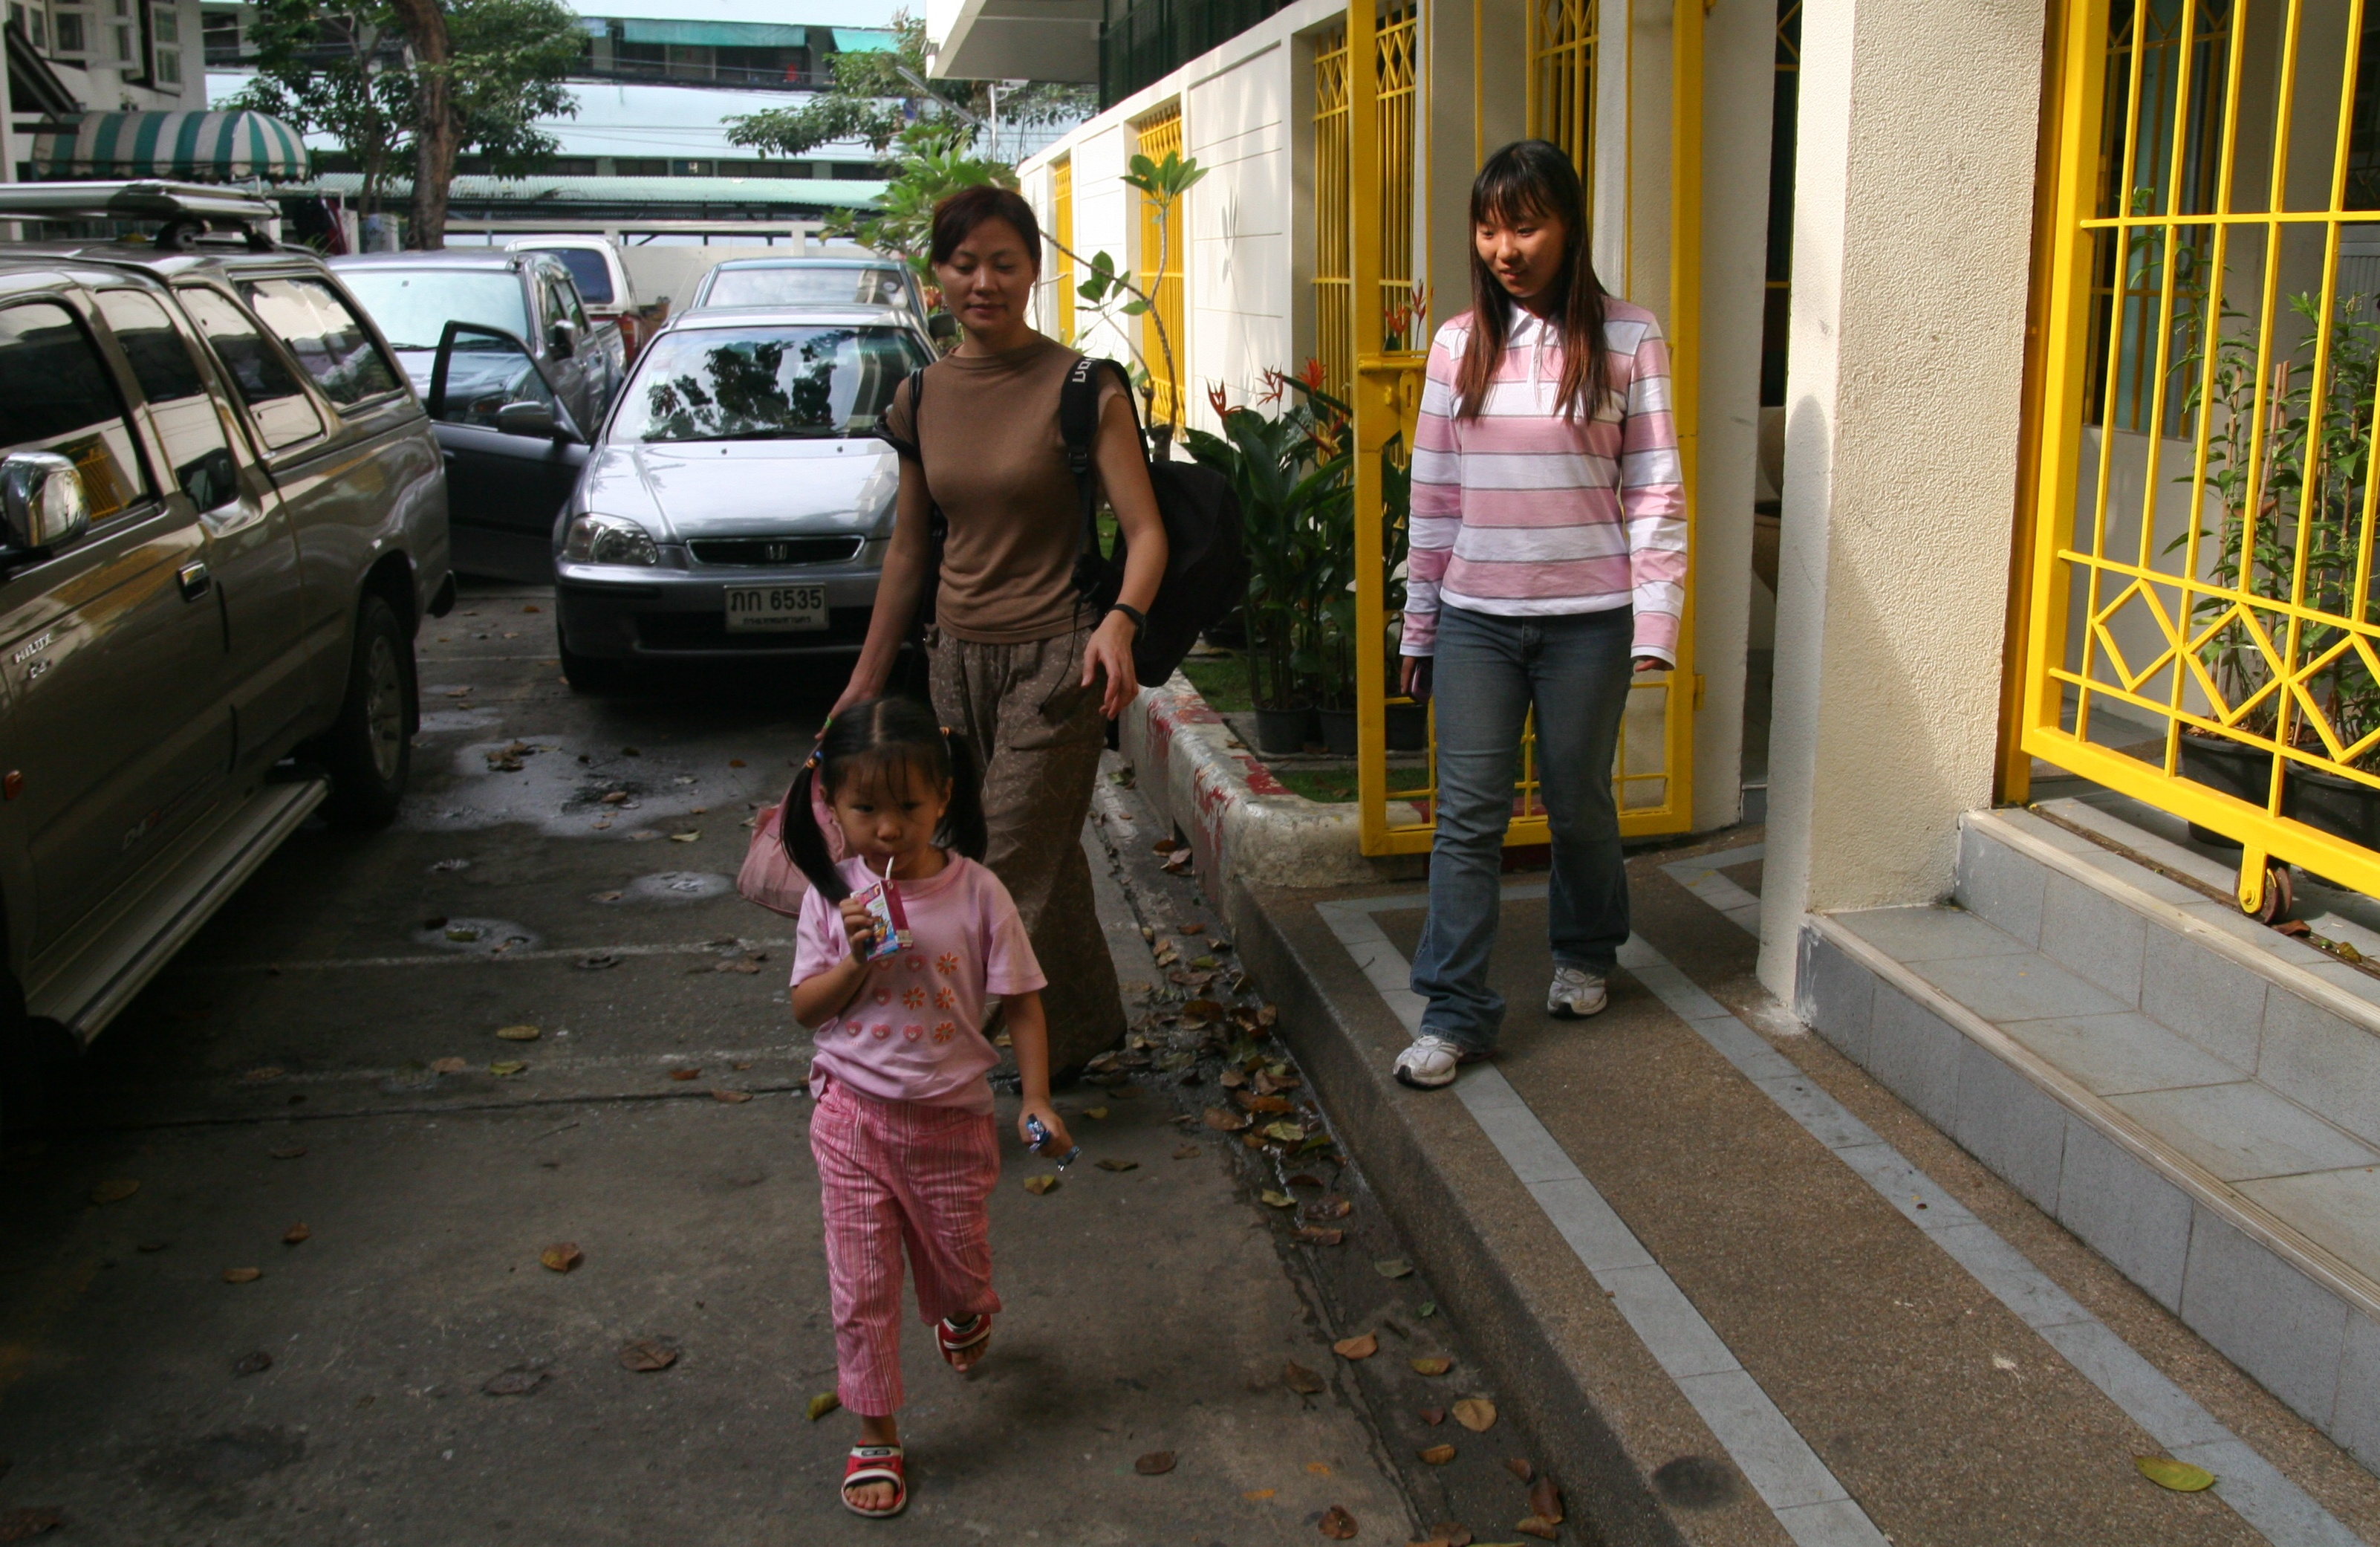 Four-year-old Huang Ying leaves the Immigration Detention Center (IDC) in Bangkok, with a family friend and 14-year-old Wang Anqi, whose parents are still incarcerated and had their visas to Thailand cancelled. They are appealing the decision. (The Epoch Times)